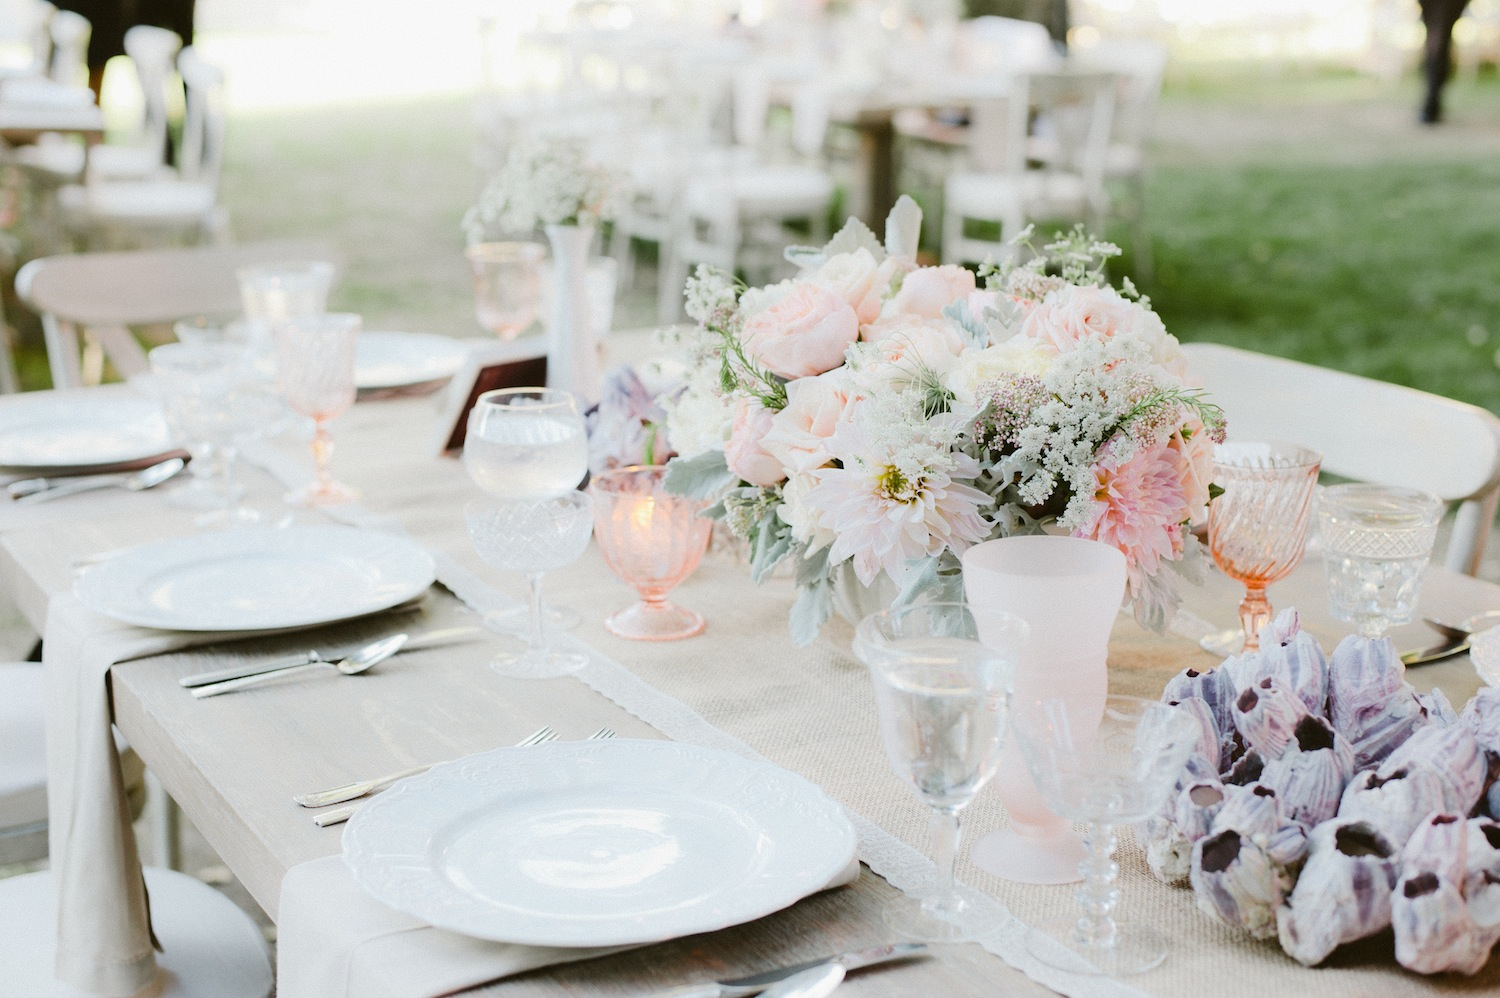 Wedding Reception Ideas: Colorful Drinkware and Glassware - Inside ...